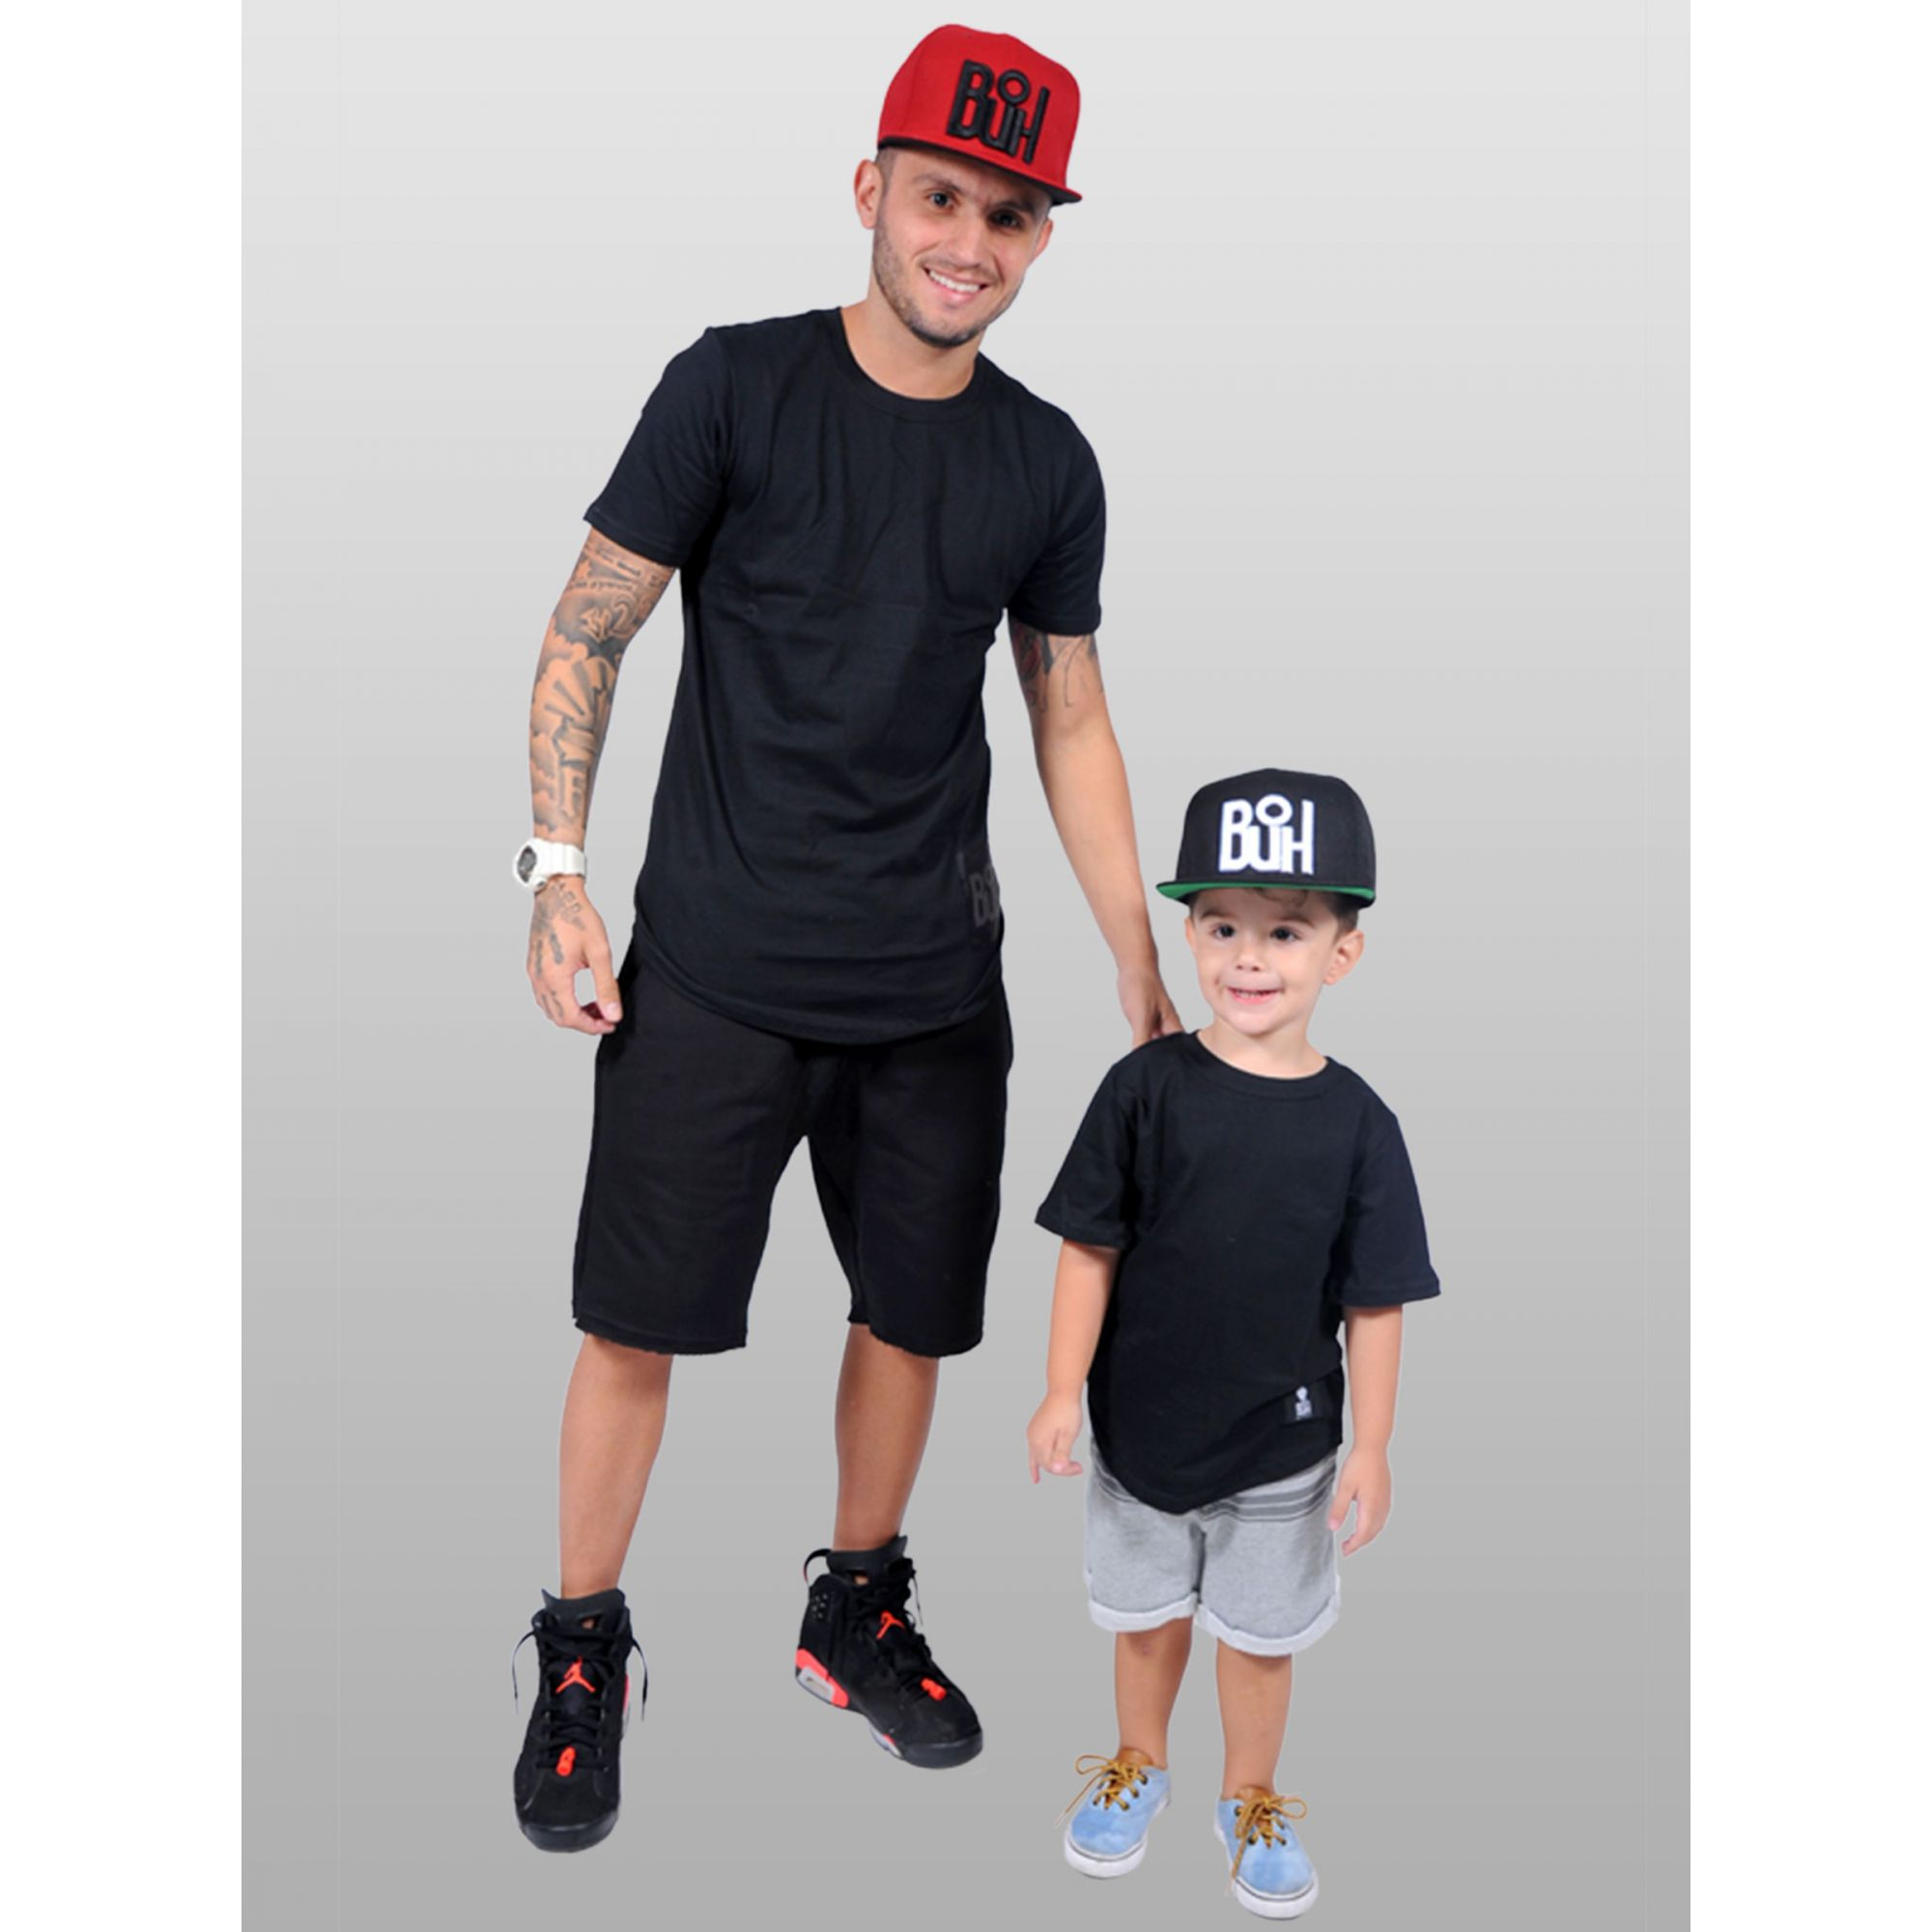 Camiseta Standard Buh Kids Black